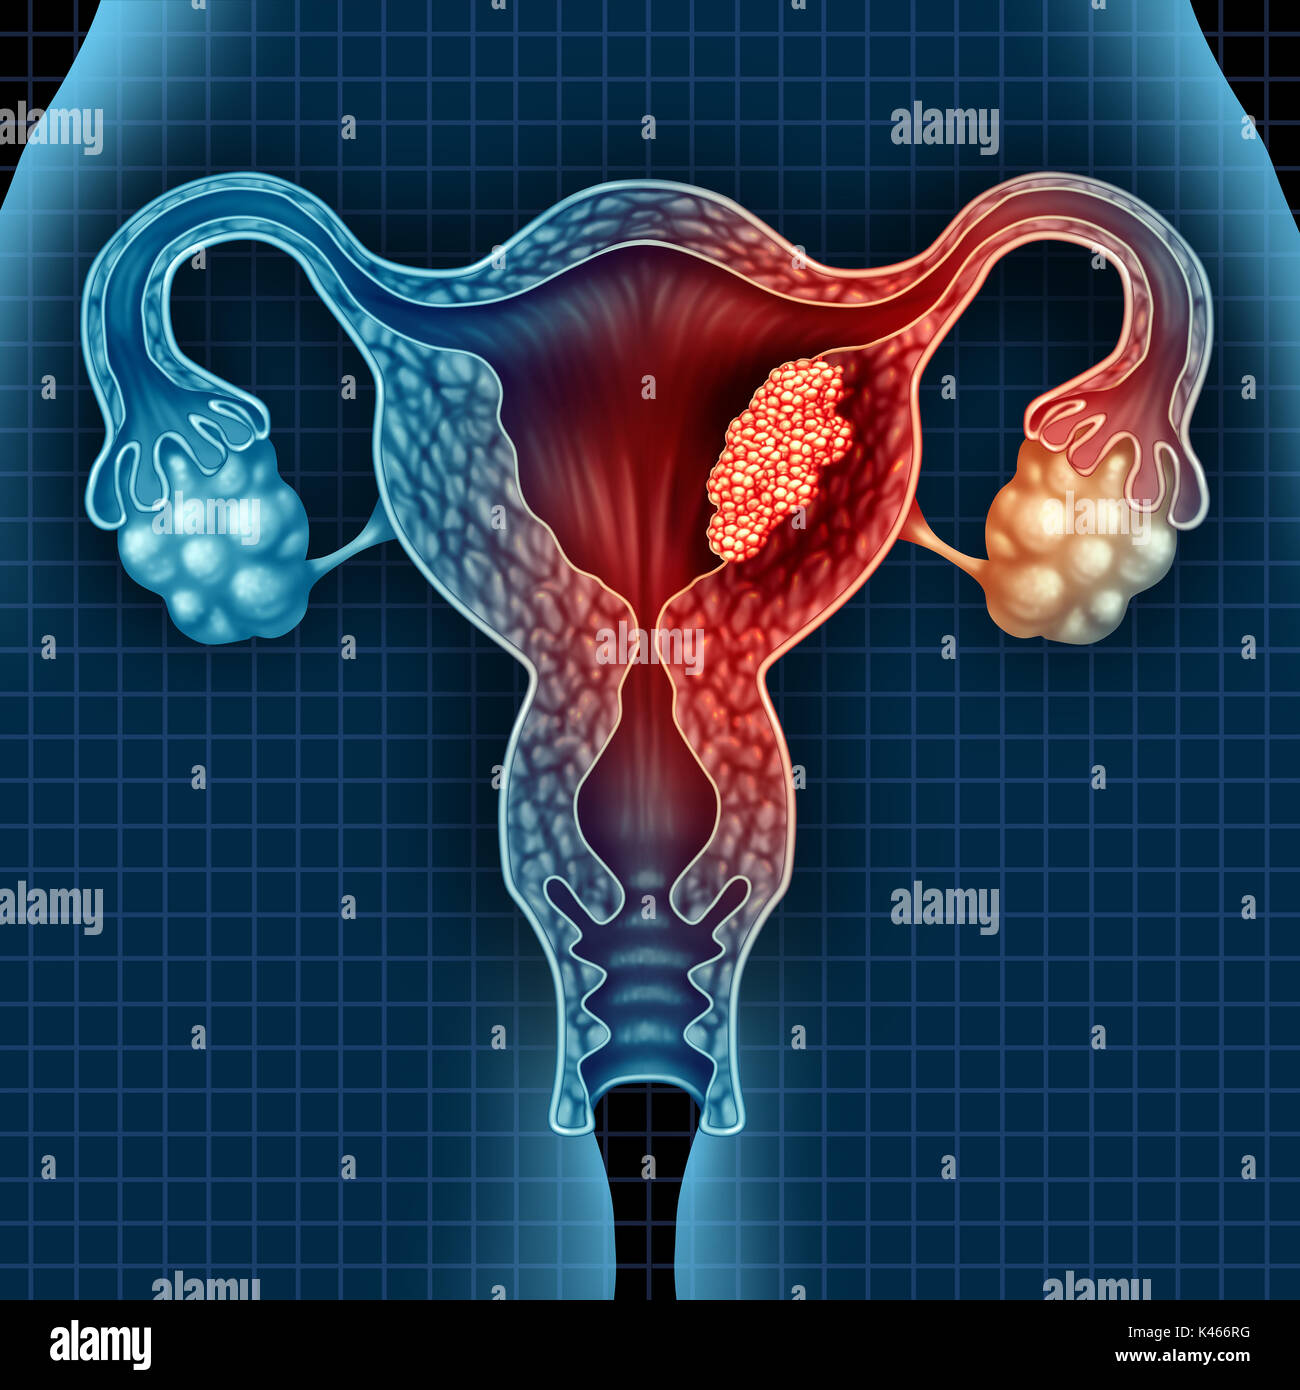 Uterus cancer and endometrial malignant tumor as a uterine medical concept as dangerous growing cells in a female body attacking the reproductive. - Stock Image